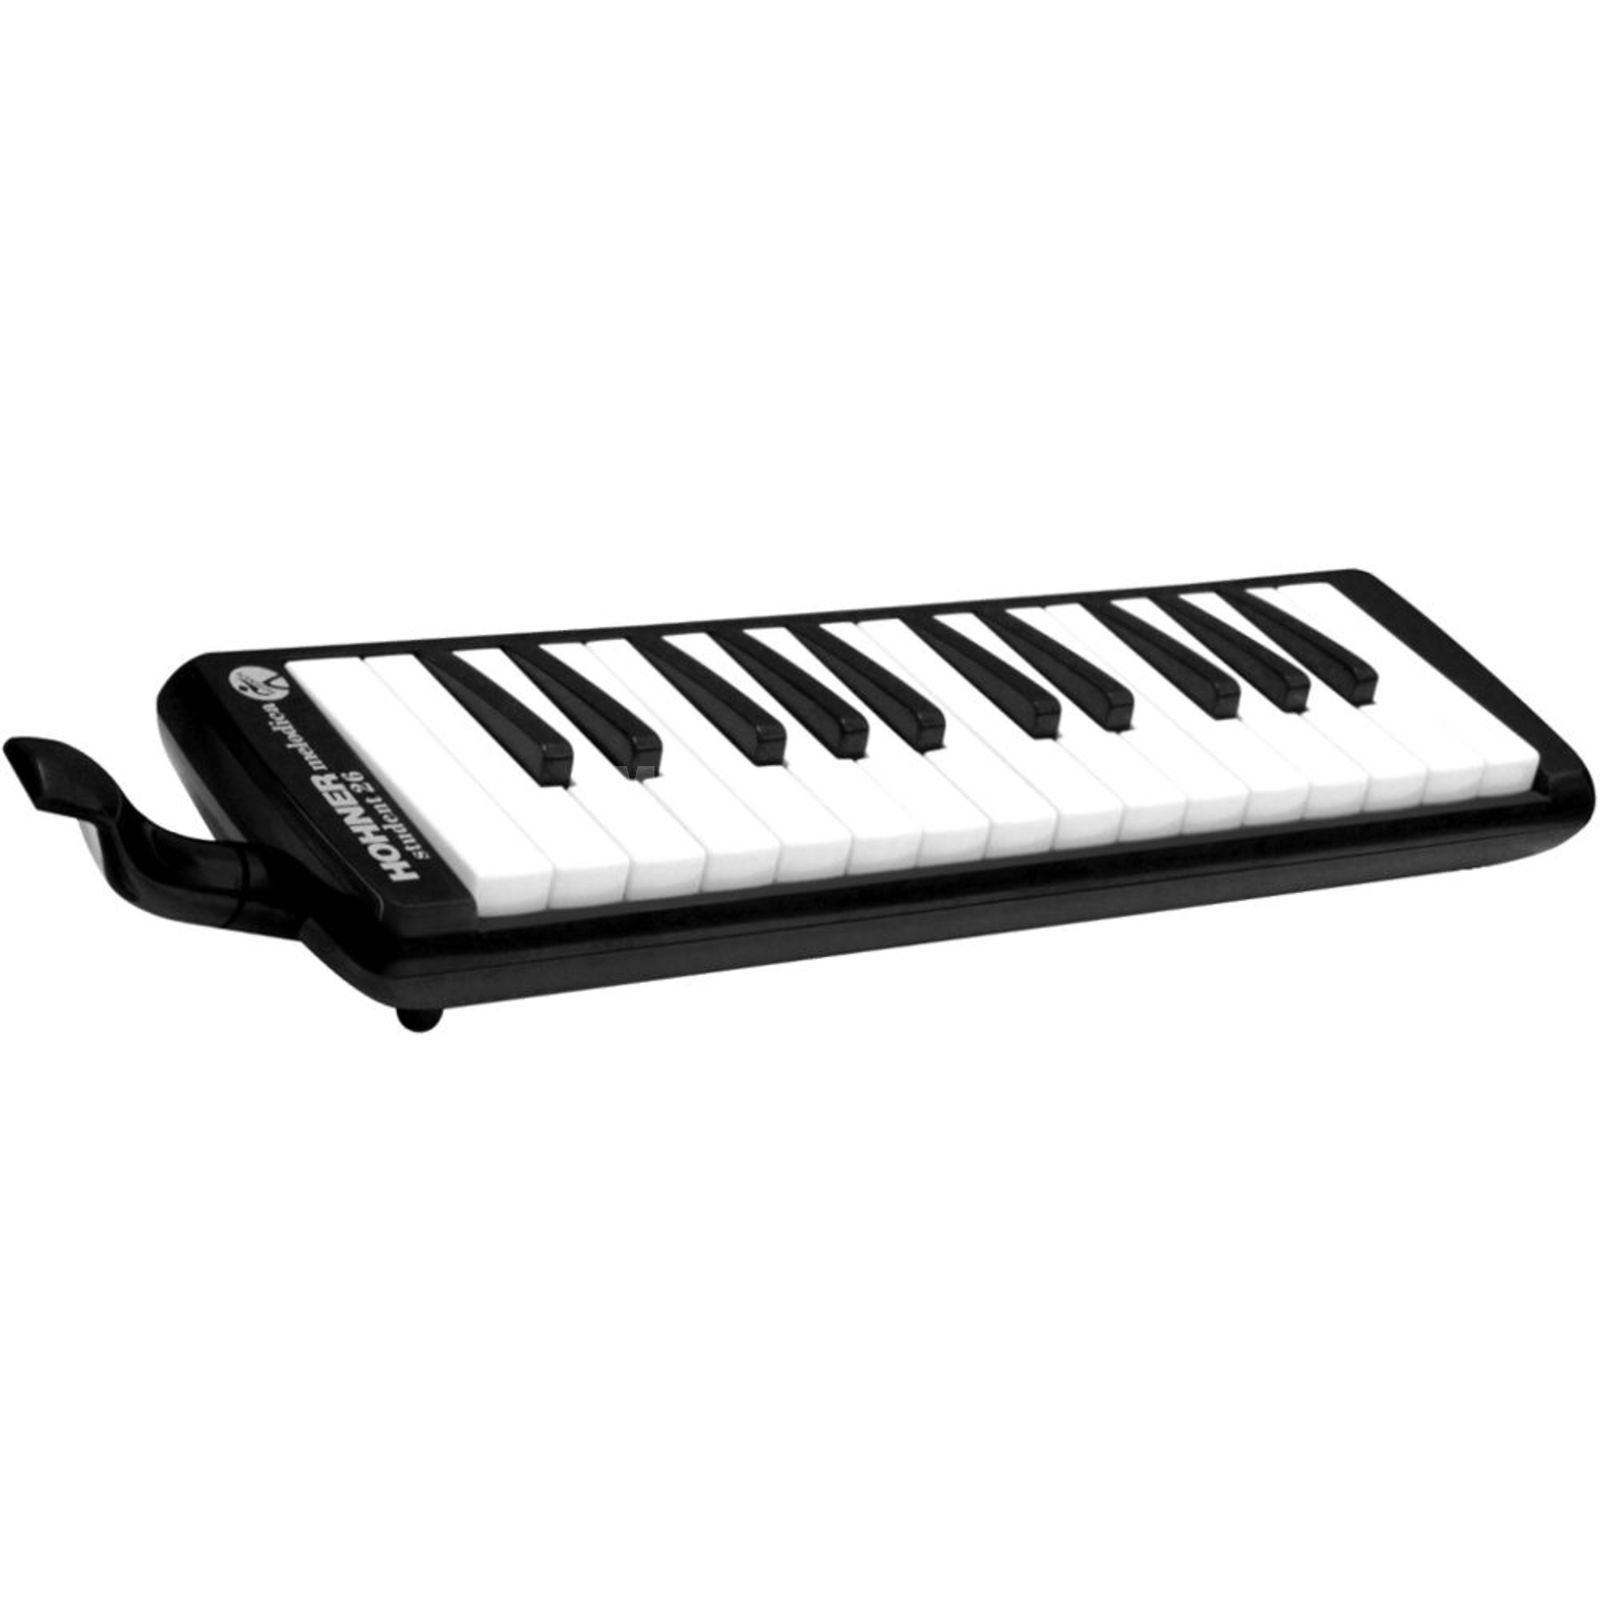 Hohner Student Melodica 26 - Black incl. Bag and Accessories Image du produit